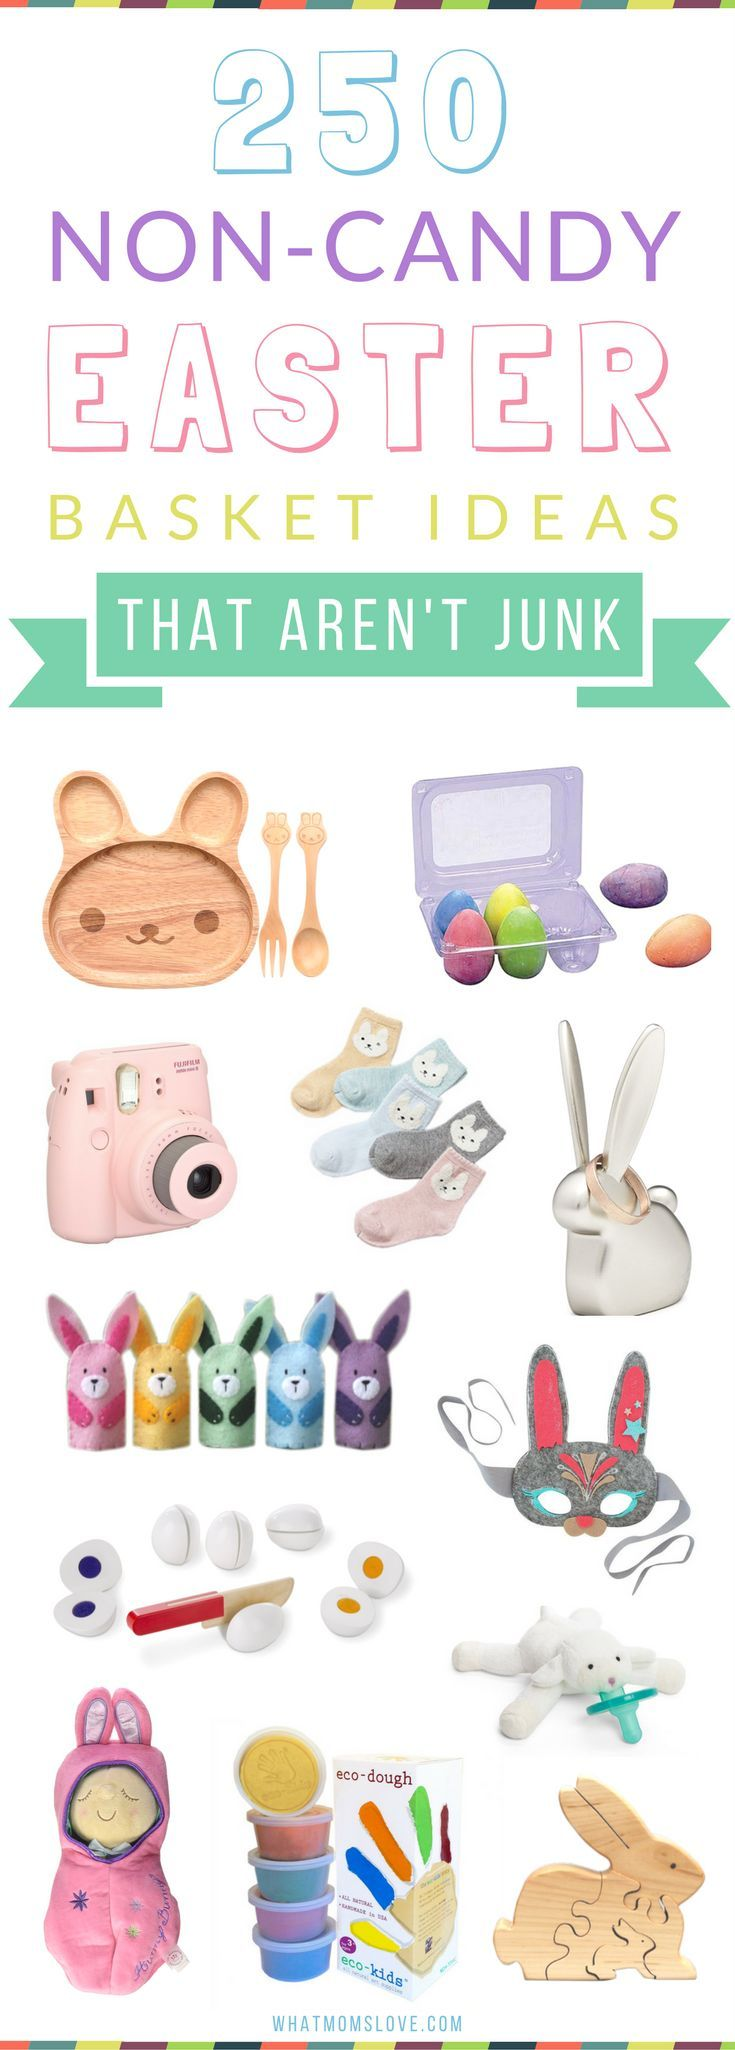 530 best easter ideas for kids images on pinterest easter ideas 250 non candy easter basket ideas for kids from babies to teens with no junky stuff negle Image collections